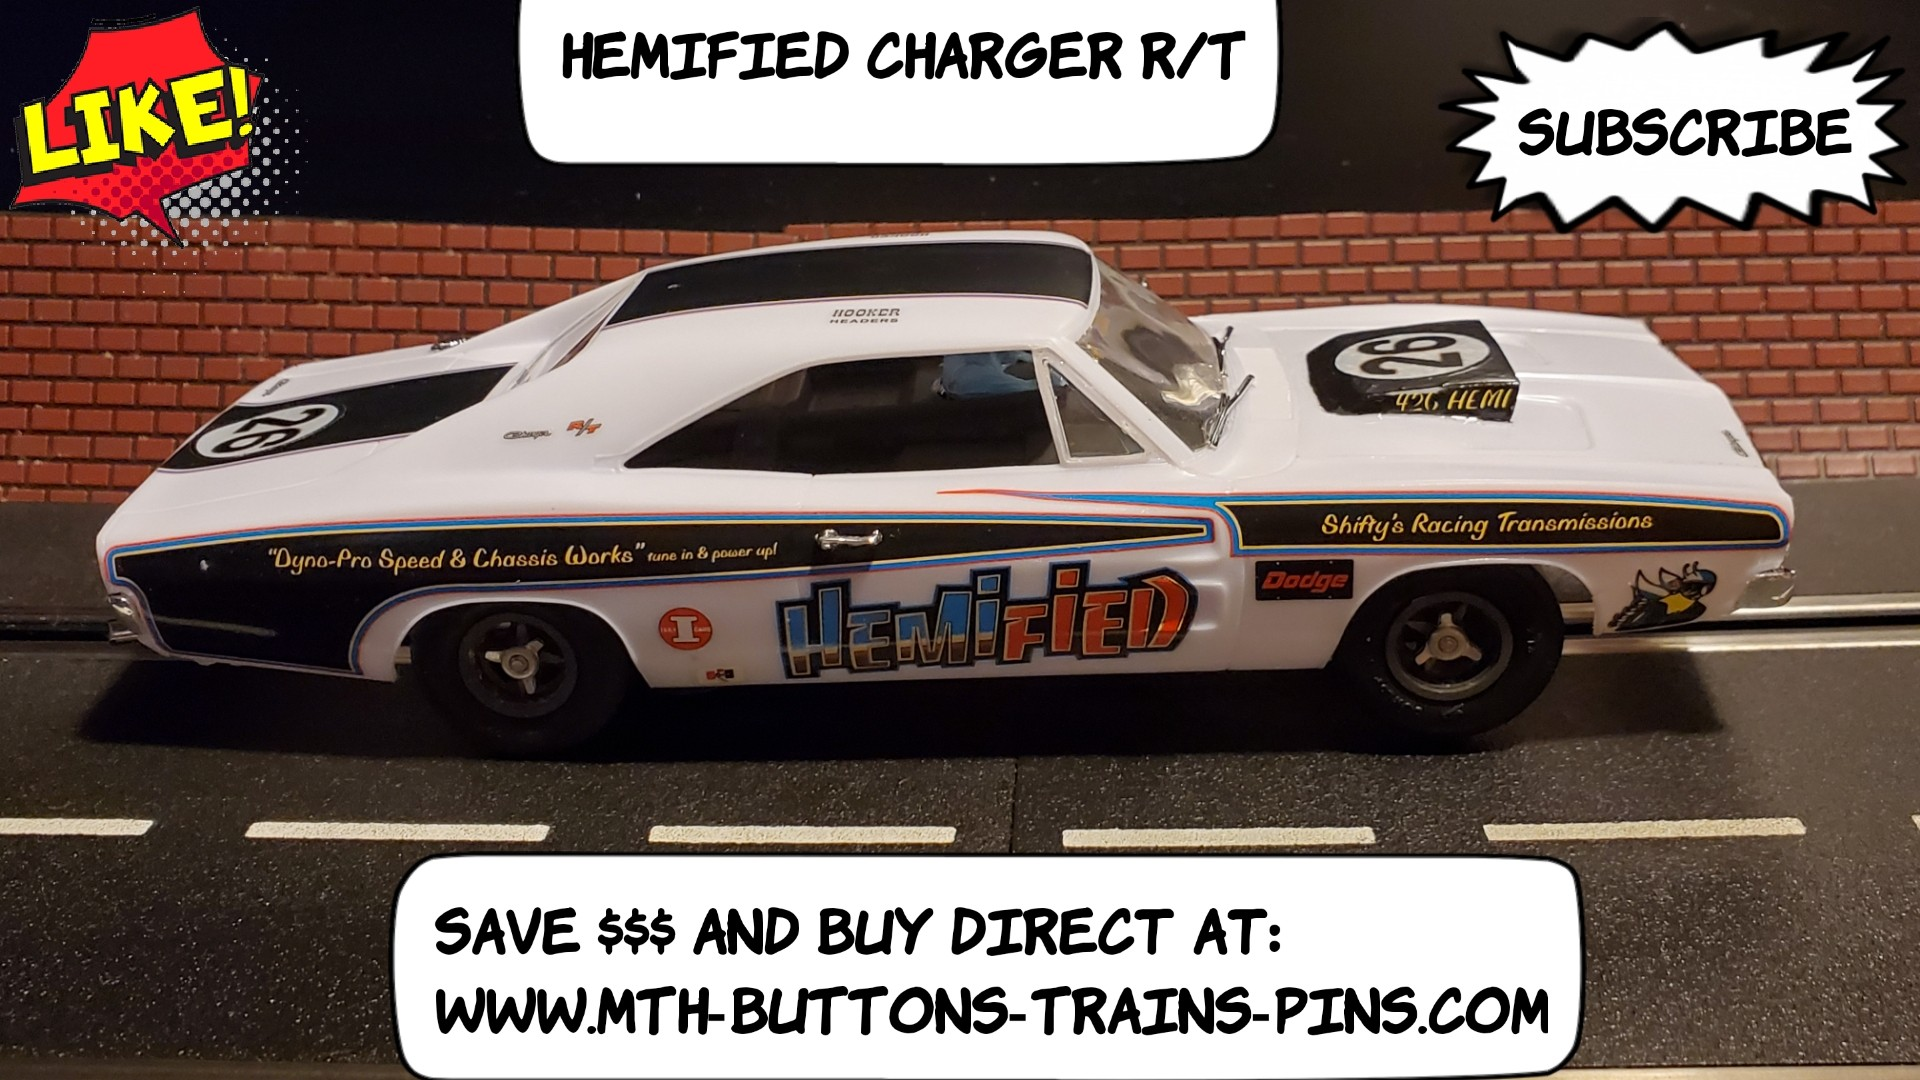 Dodge Charger R/T Hemified Slot Car 1:24 Scale White Car #26